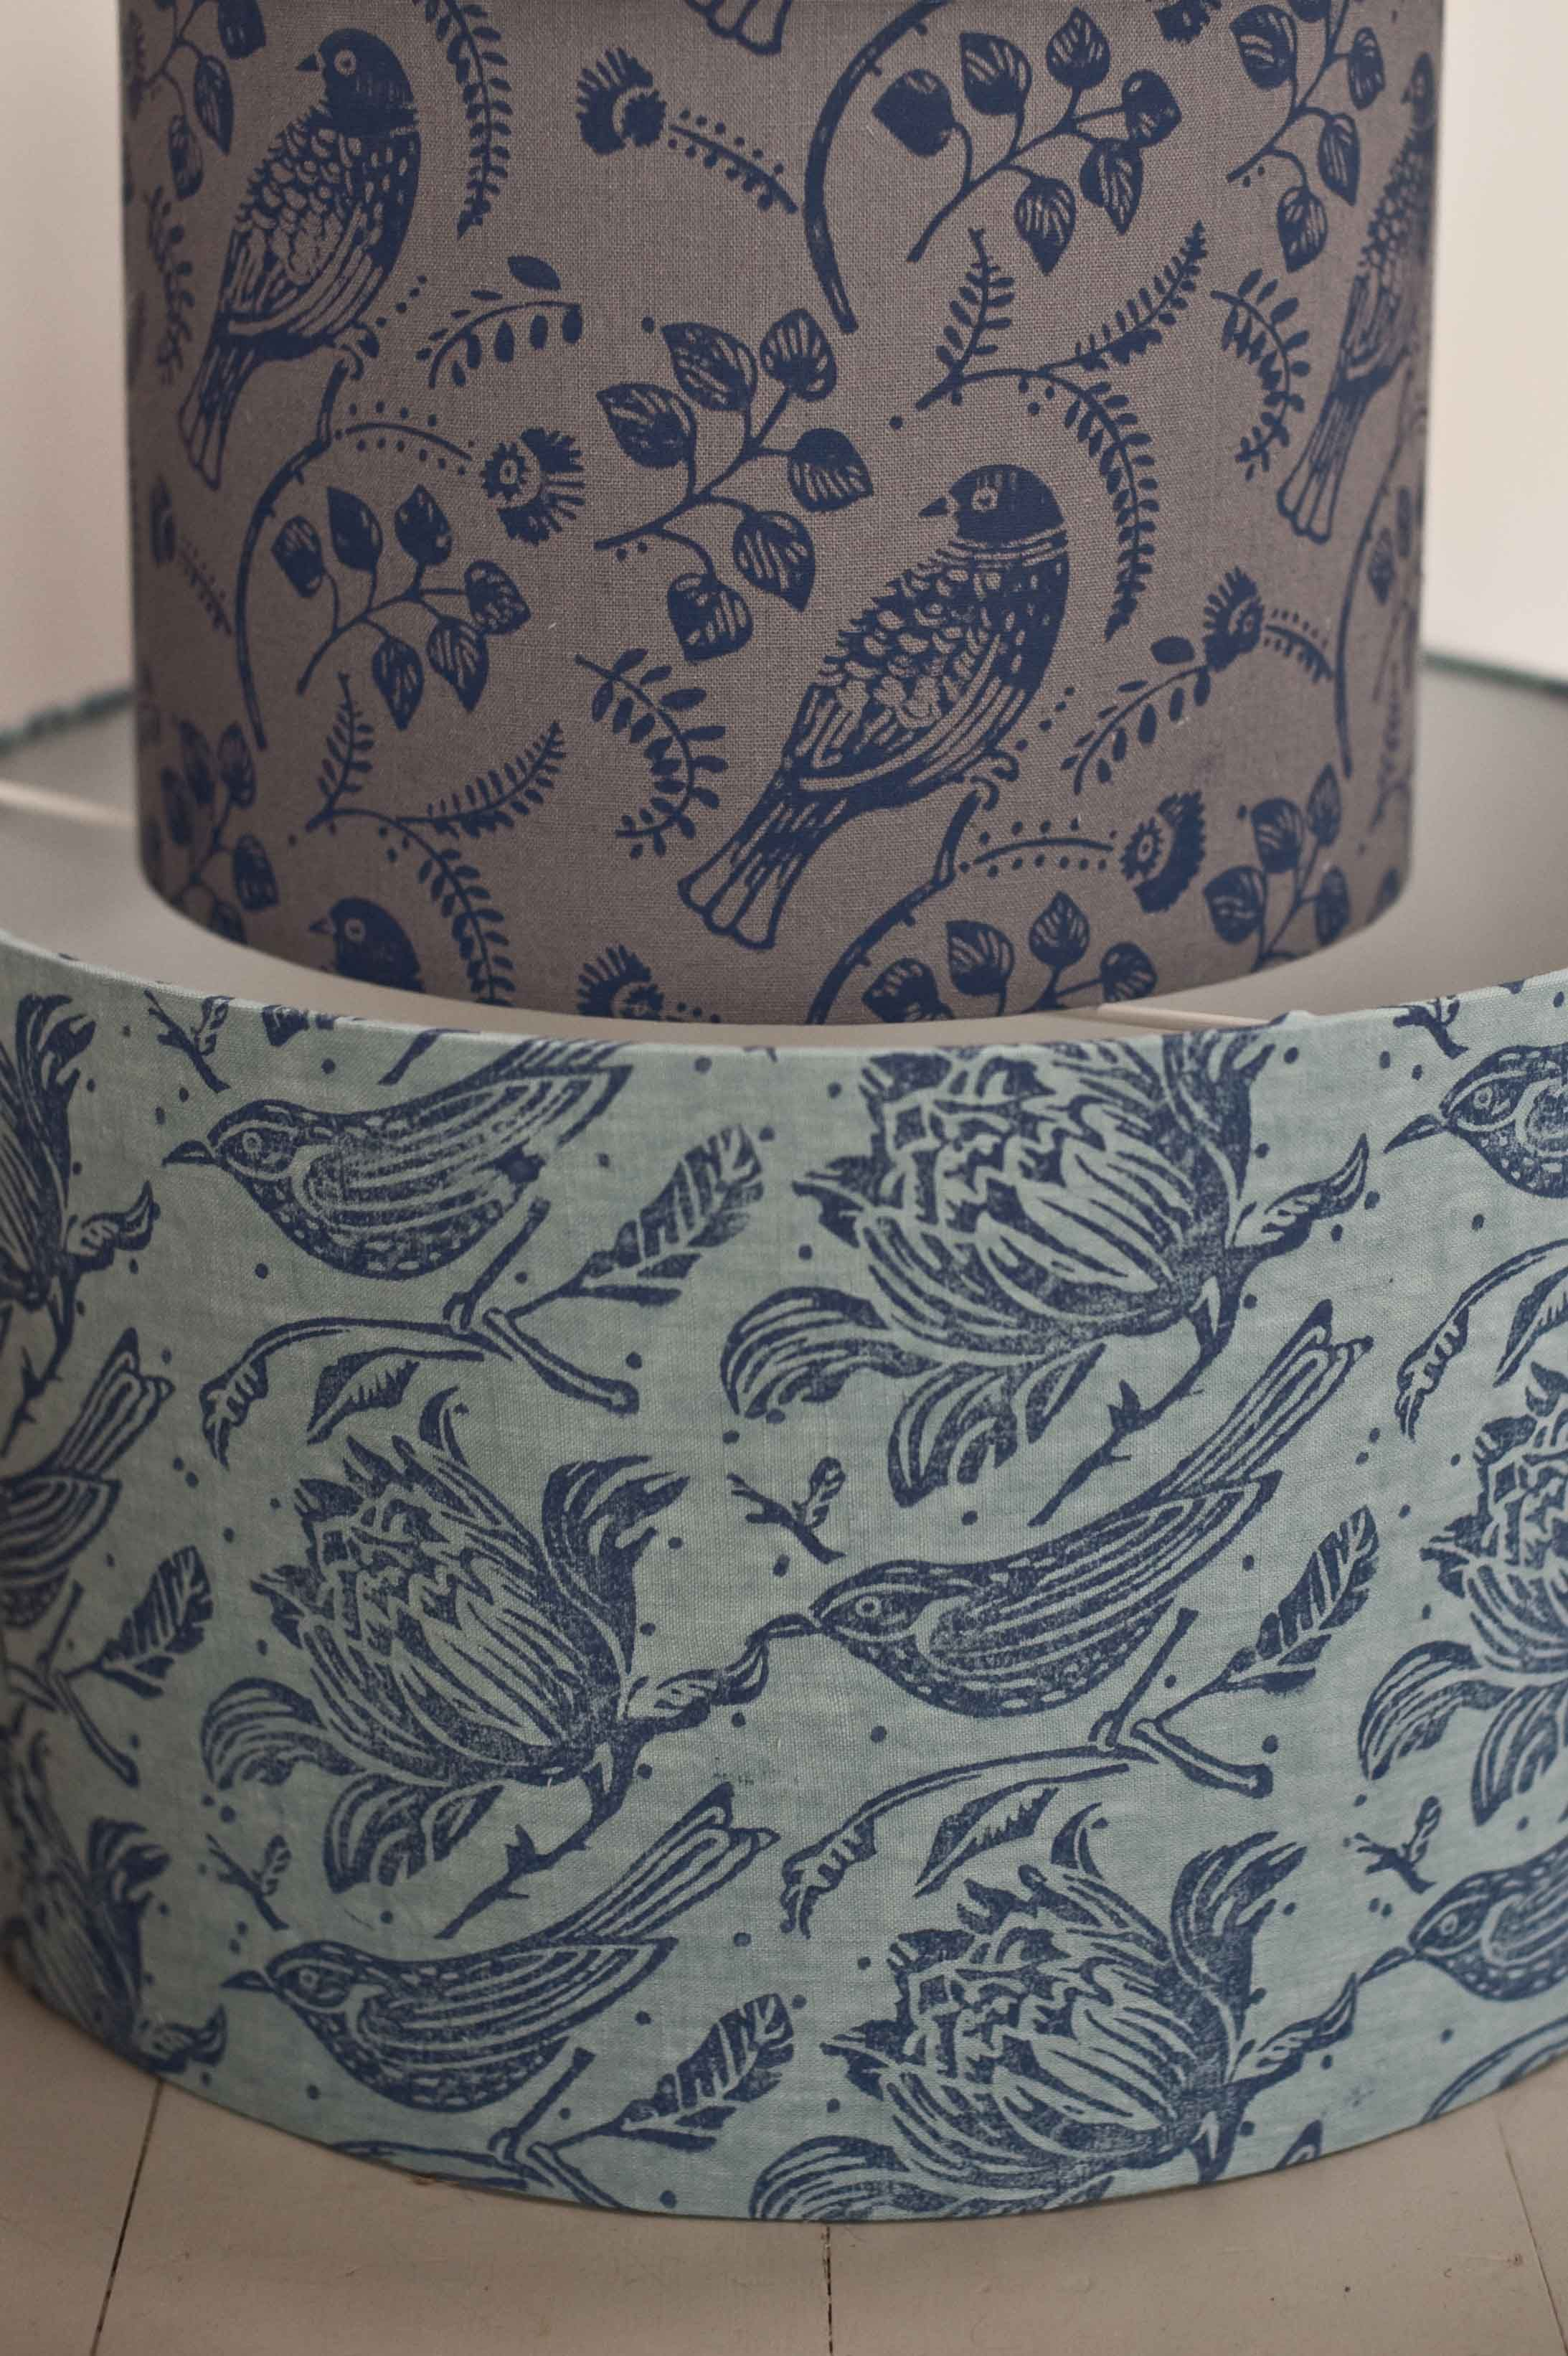 tuvi tussock lampshades printed with a patterned paint ...